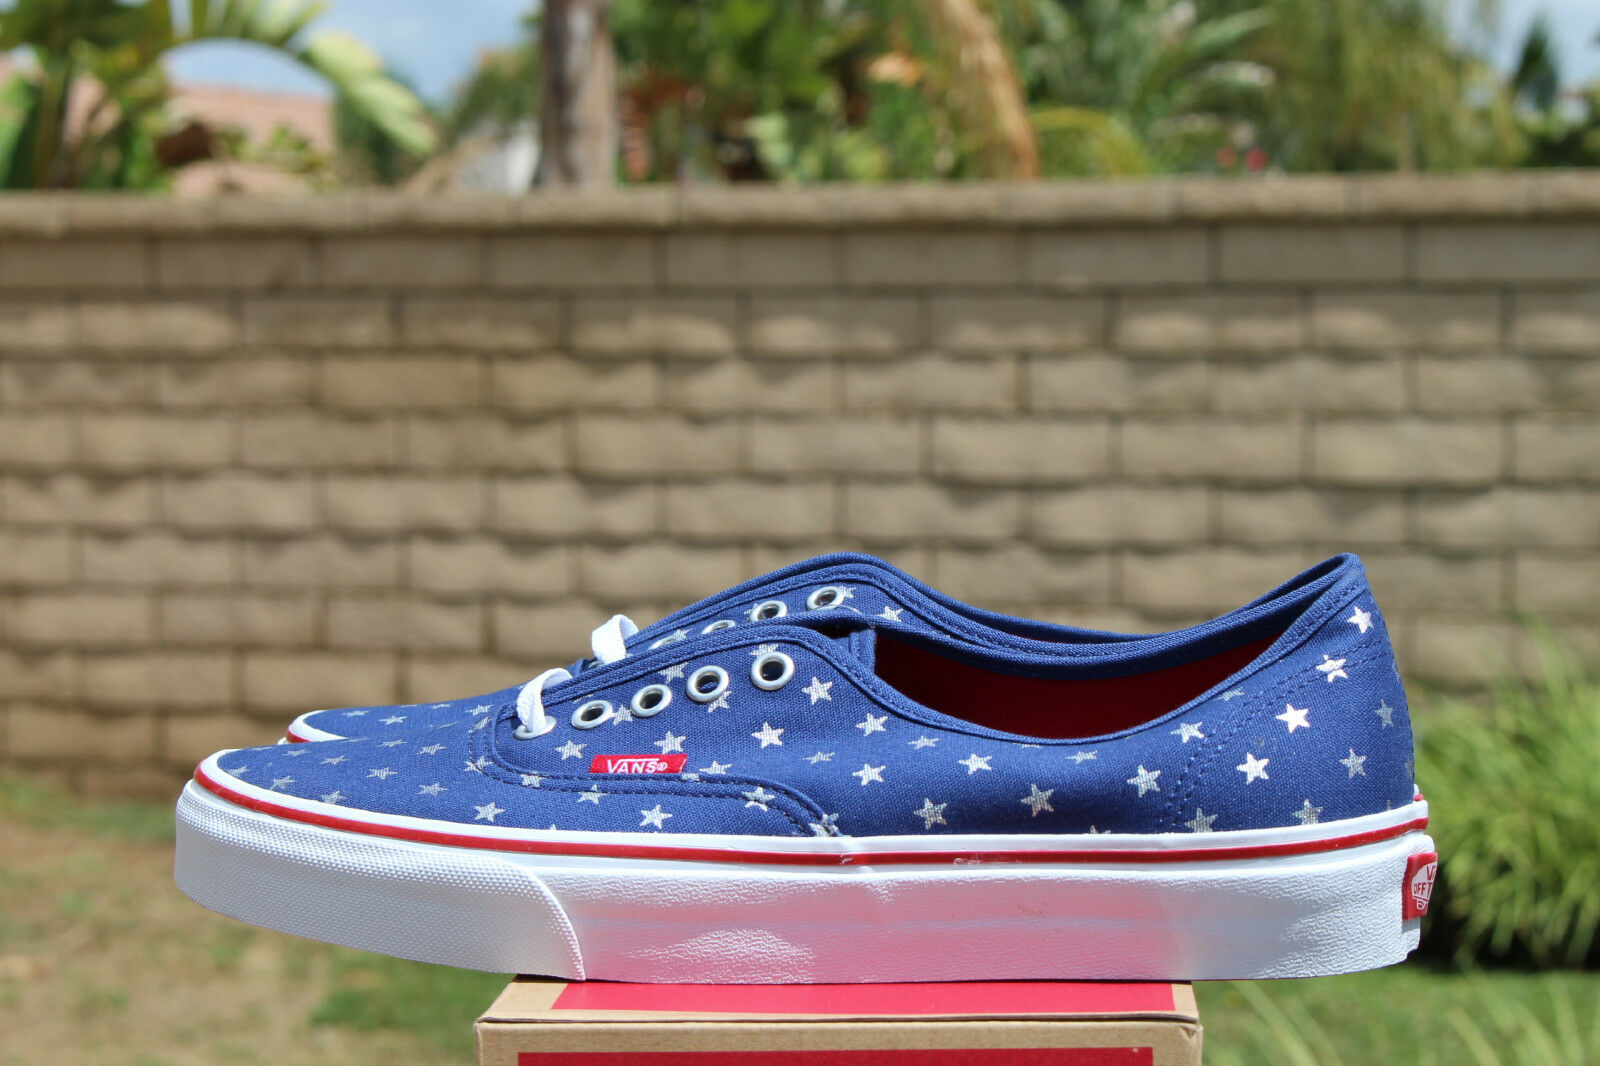 VANS CLASSIC AUTHENTIC SZ 6 STUDDED STARS RED VN BLUE OFF THE WALL VN RED 018BH0F c19bcb